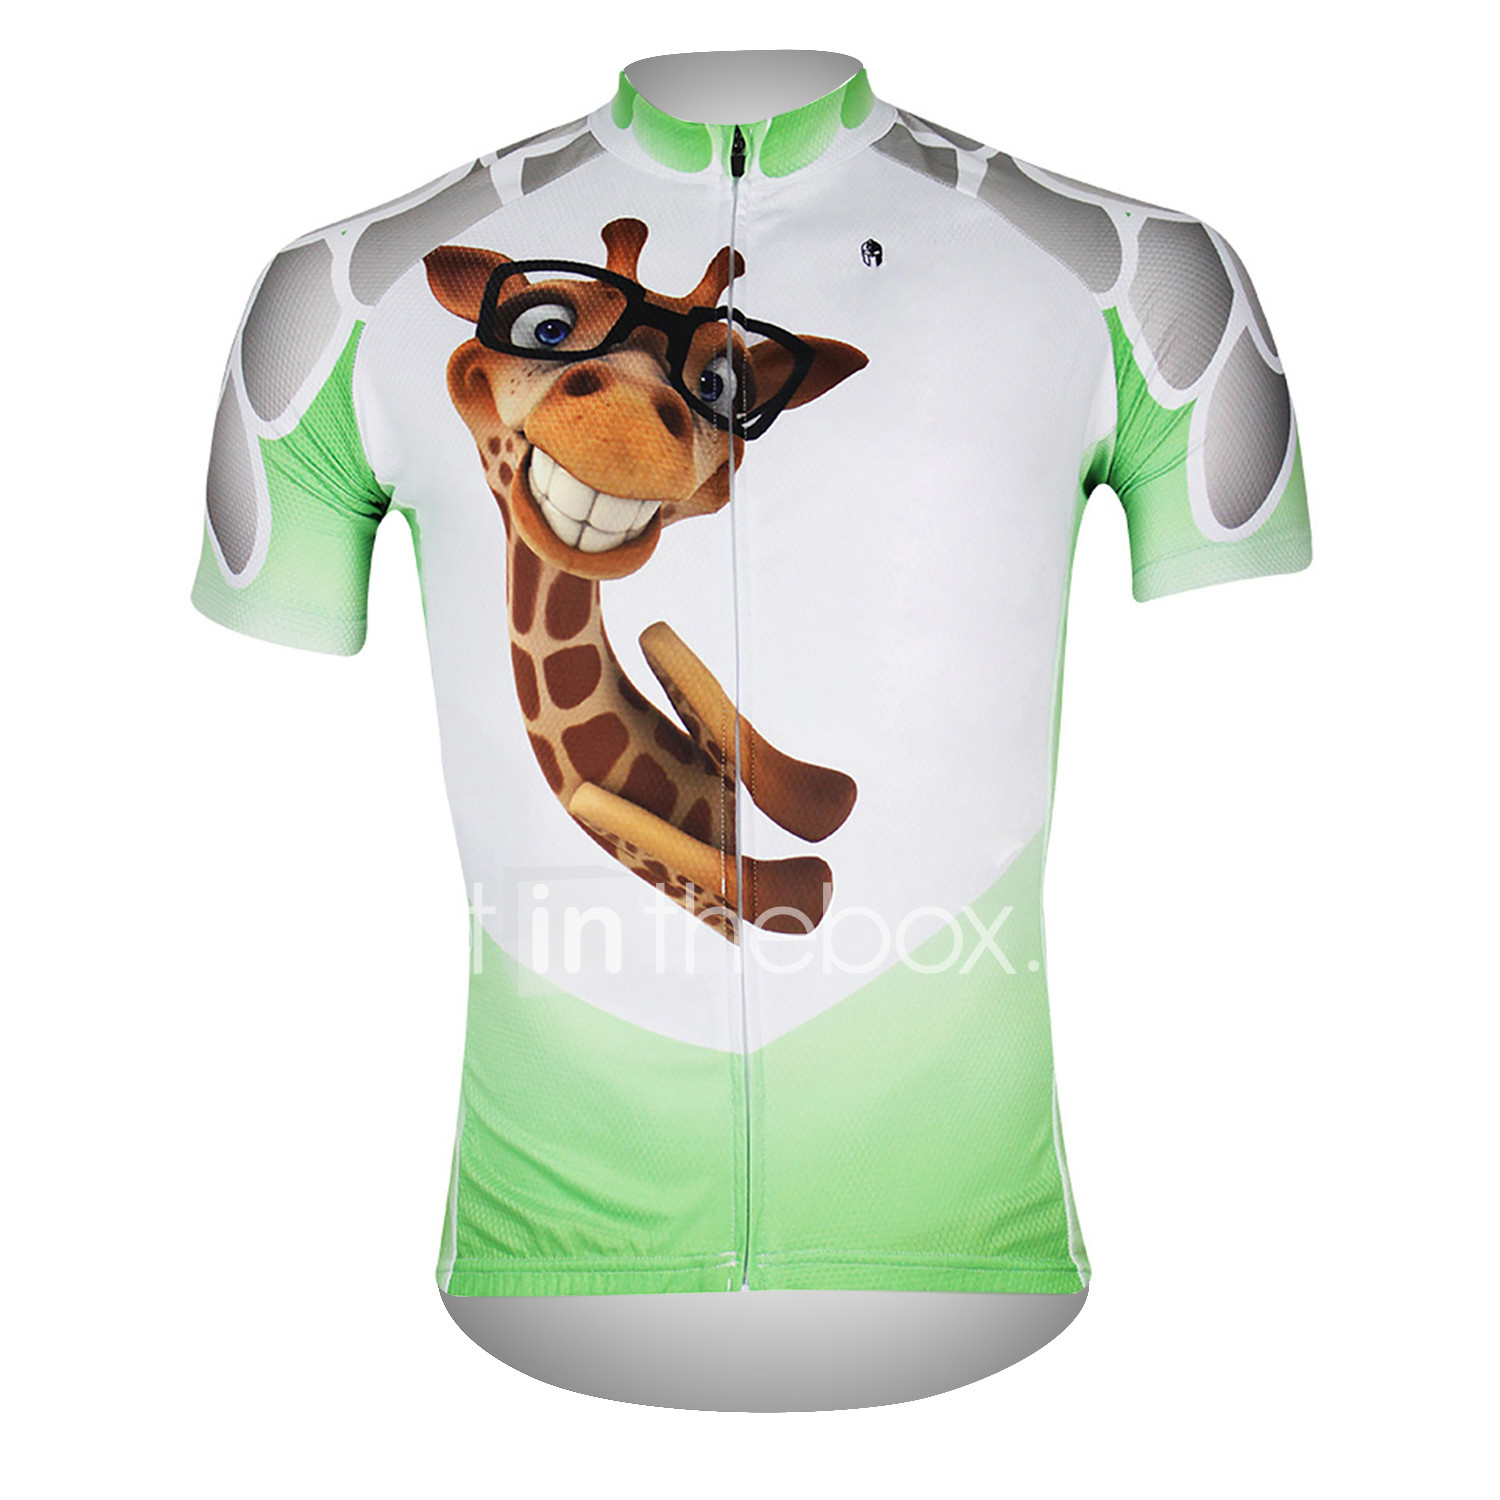 04550855cbe ILPALADINO Men s Short Sleeve Cycling Jersey - White   Green Bike Jersey  Top Breathable Quick Dry Ultraviolet Resistant Sports 100% Polyester Mountain  Bike ...